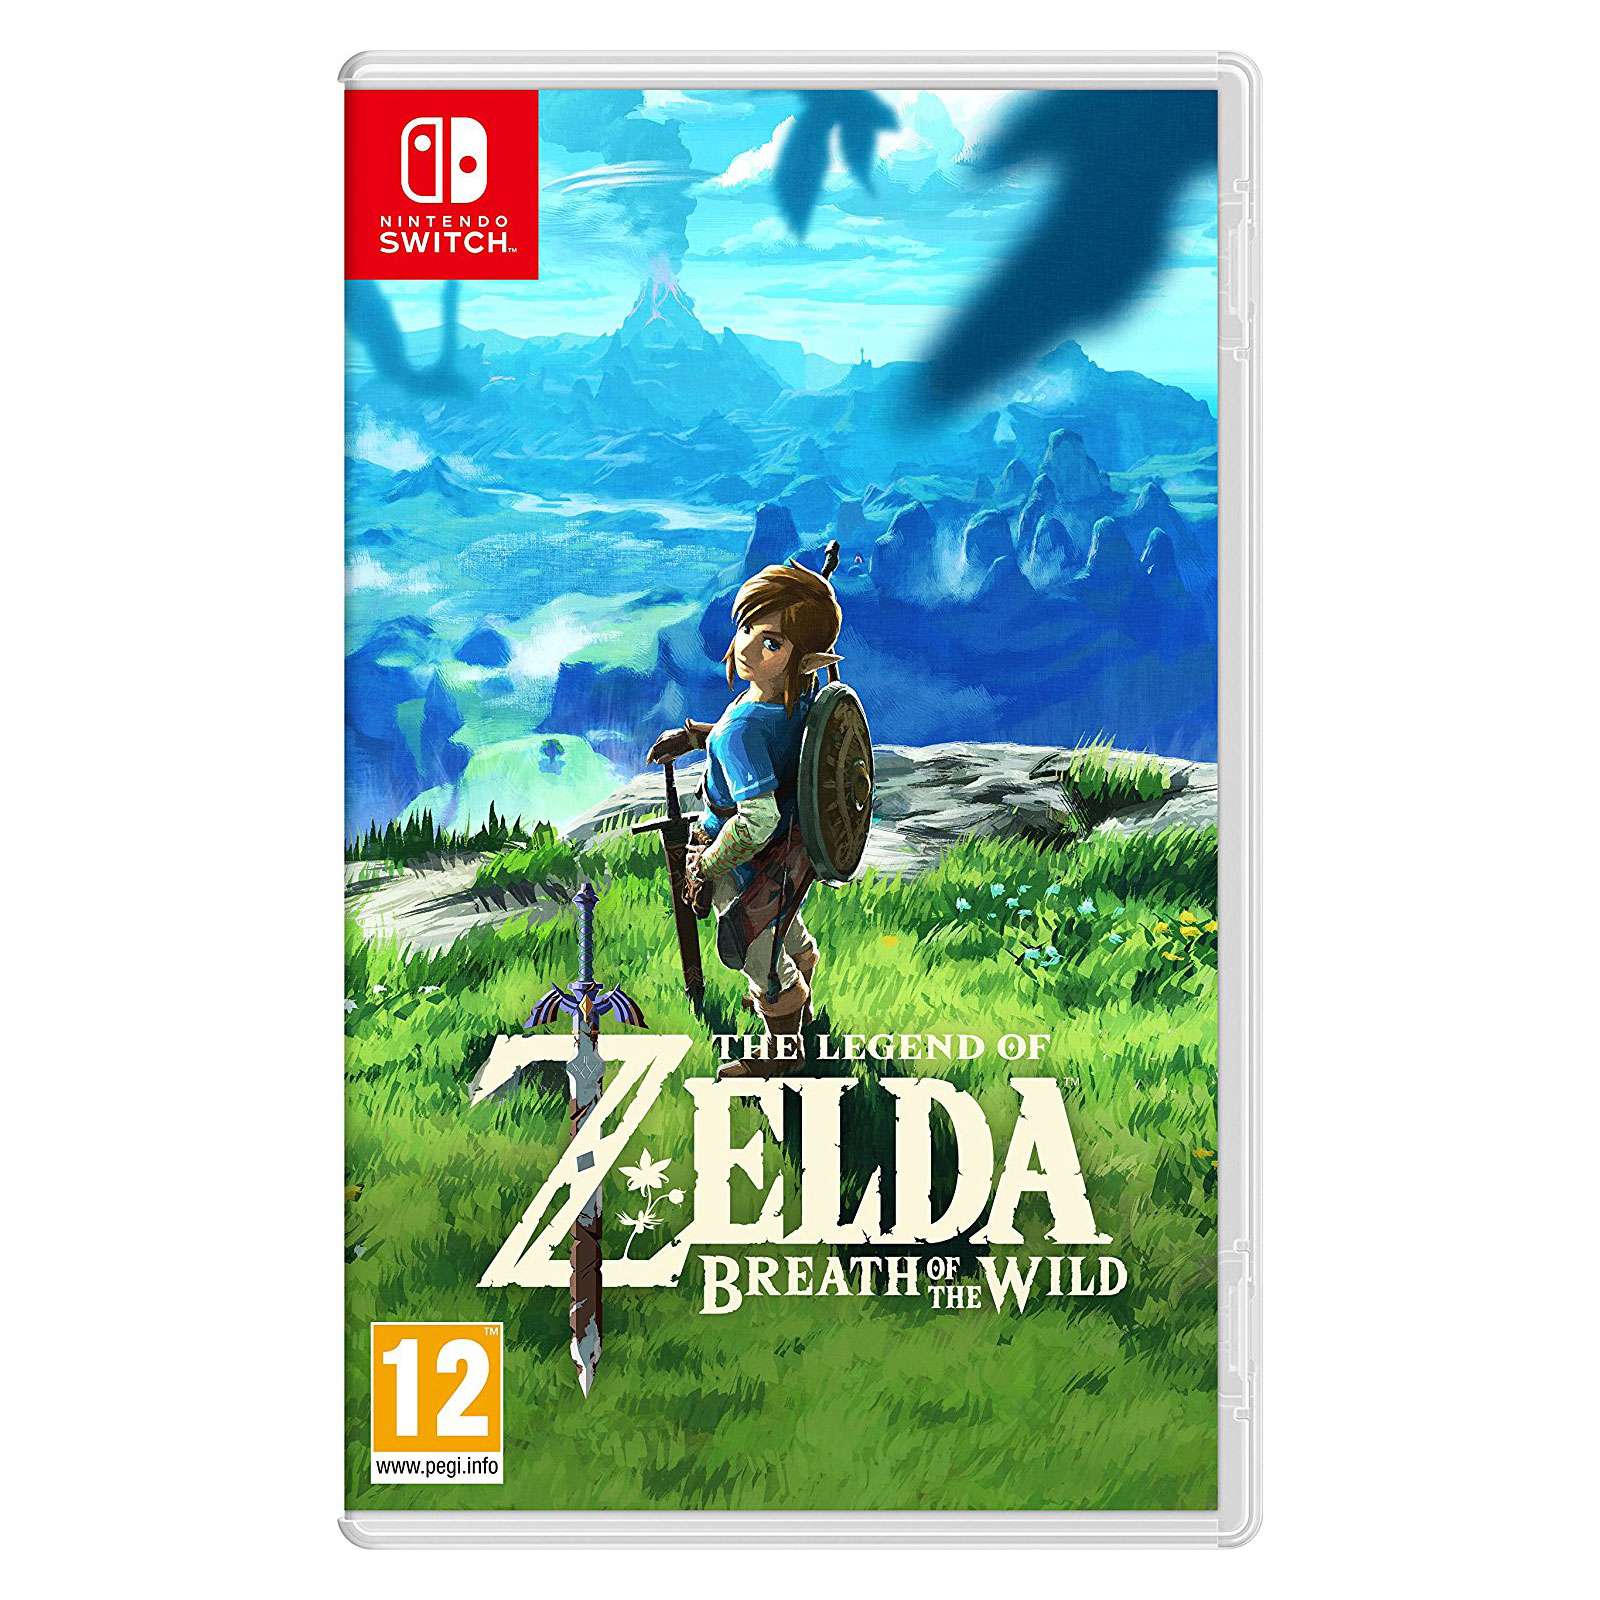 Jeux Nintendo Switch The Legend of Zelda : Breath of the Wild (Switch) The Legend of Zelda : Breath of the Wild (Switch)